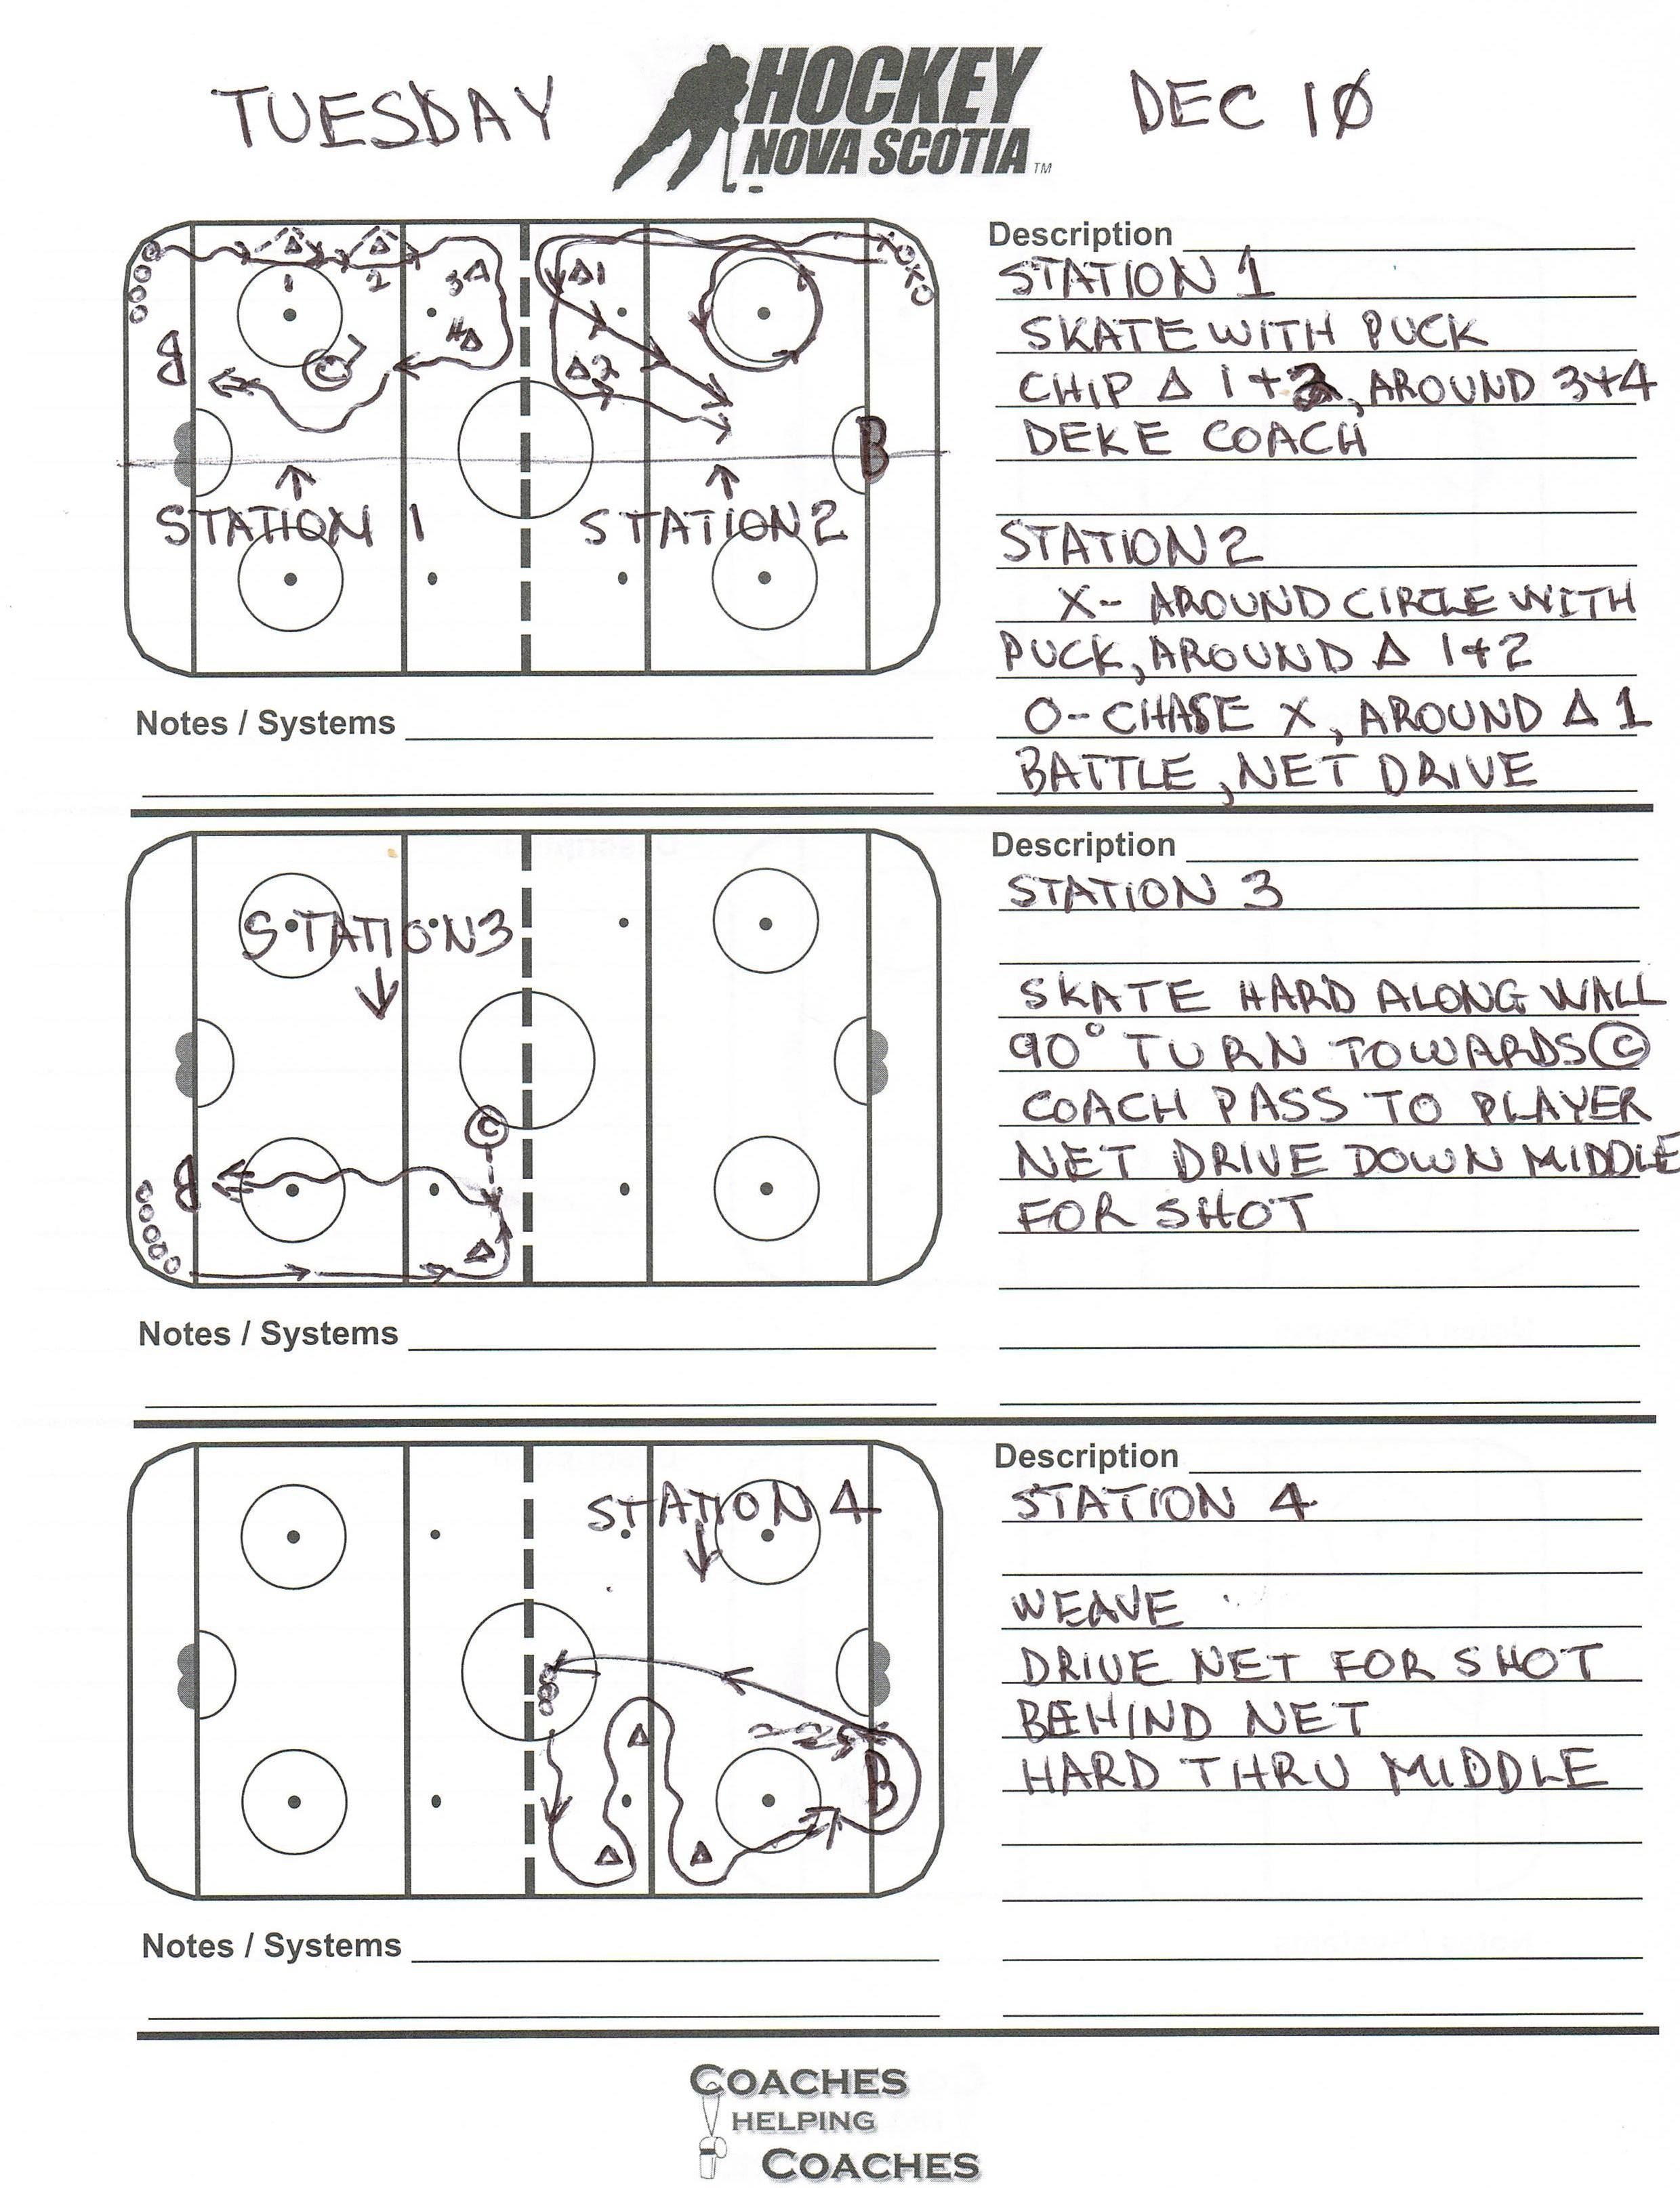 Full-ice practice plan for Novice / U8, with four stations